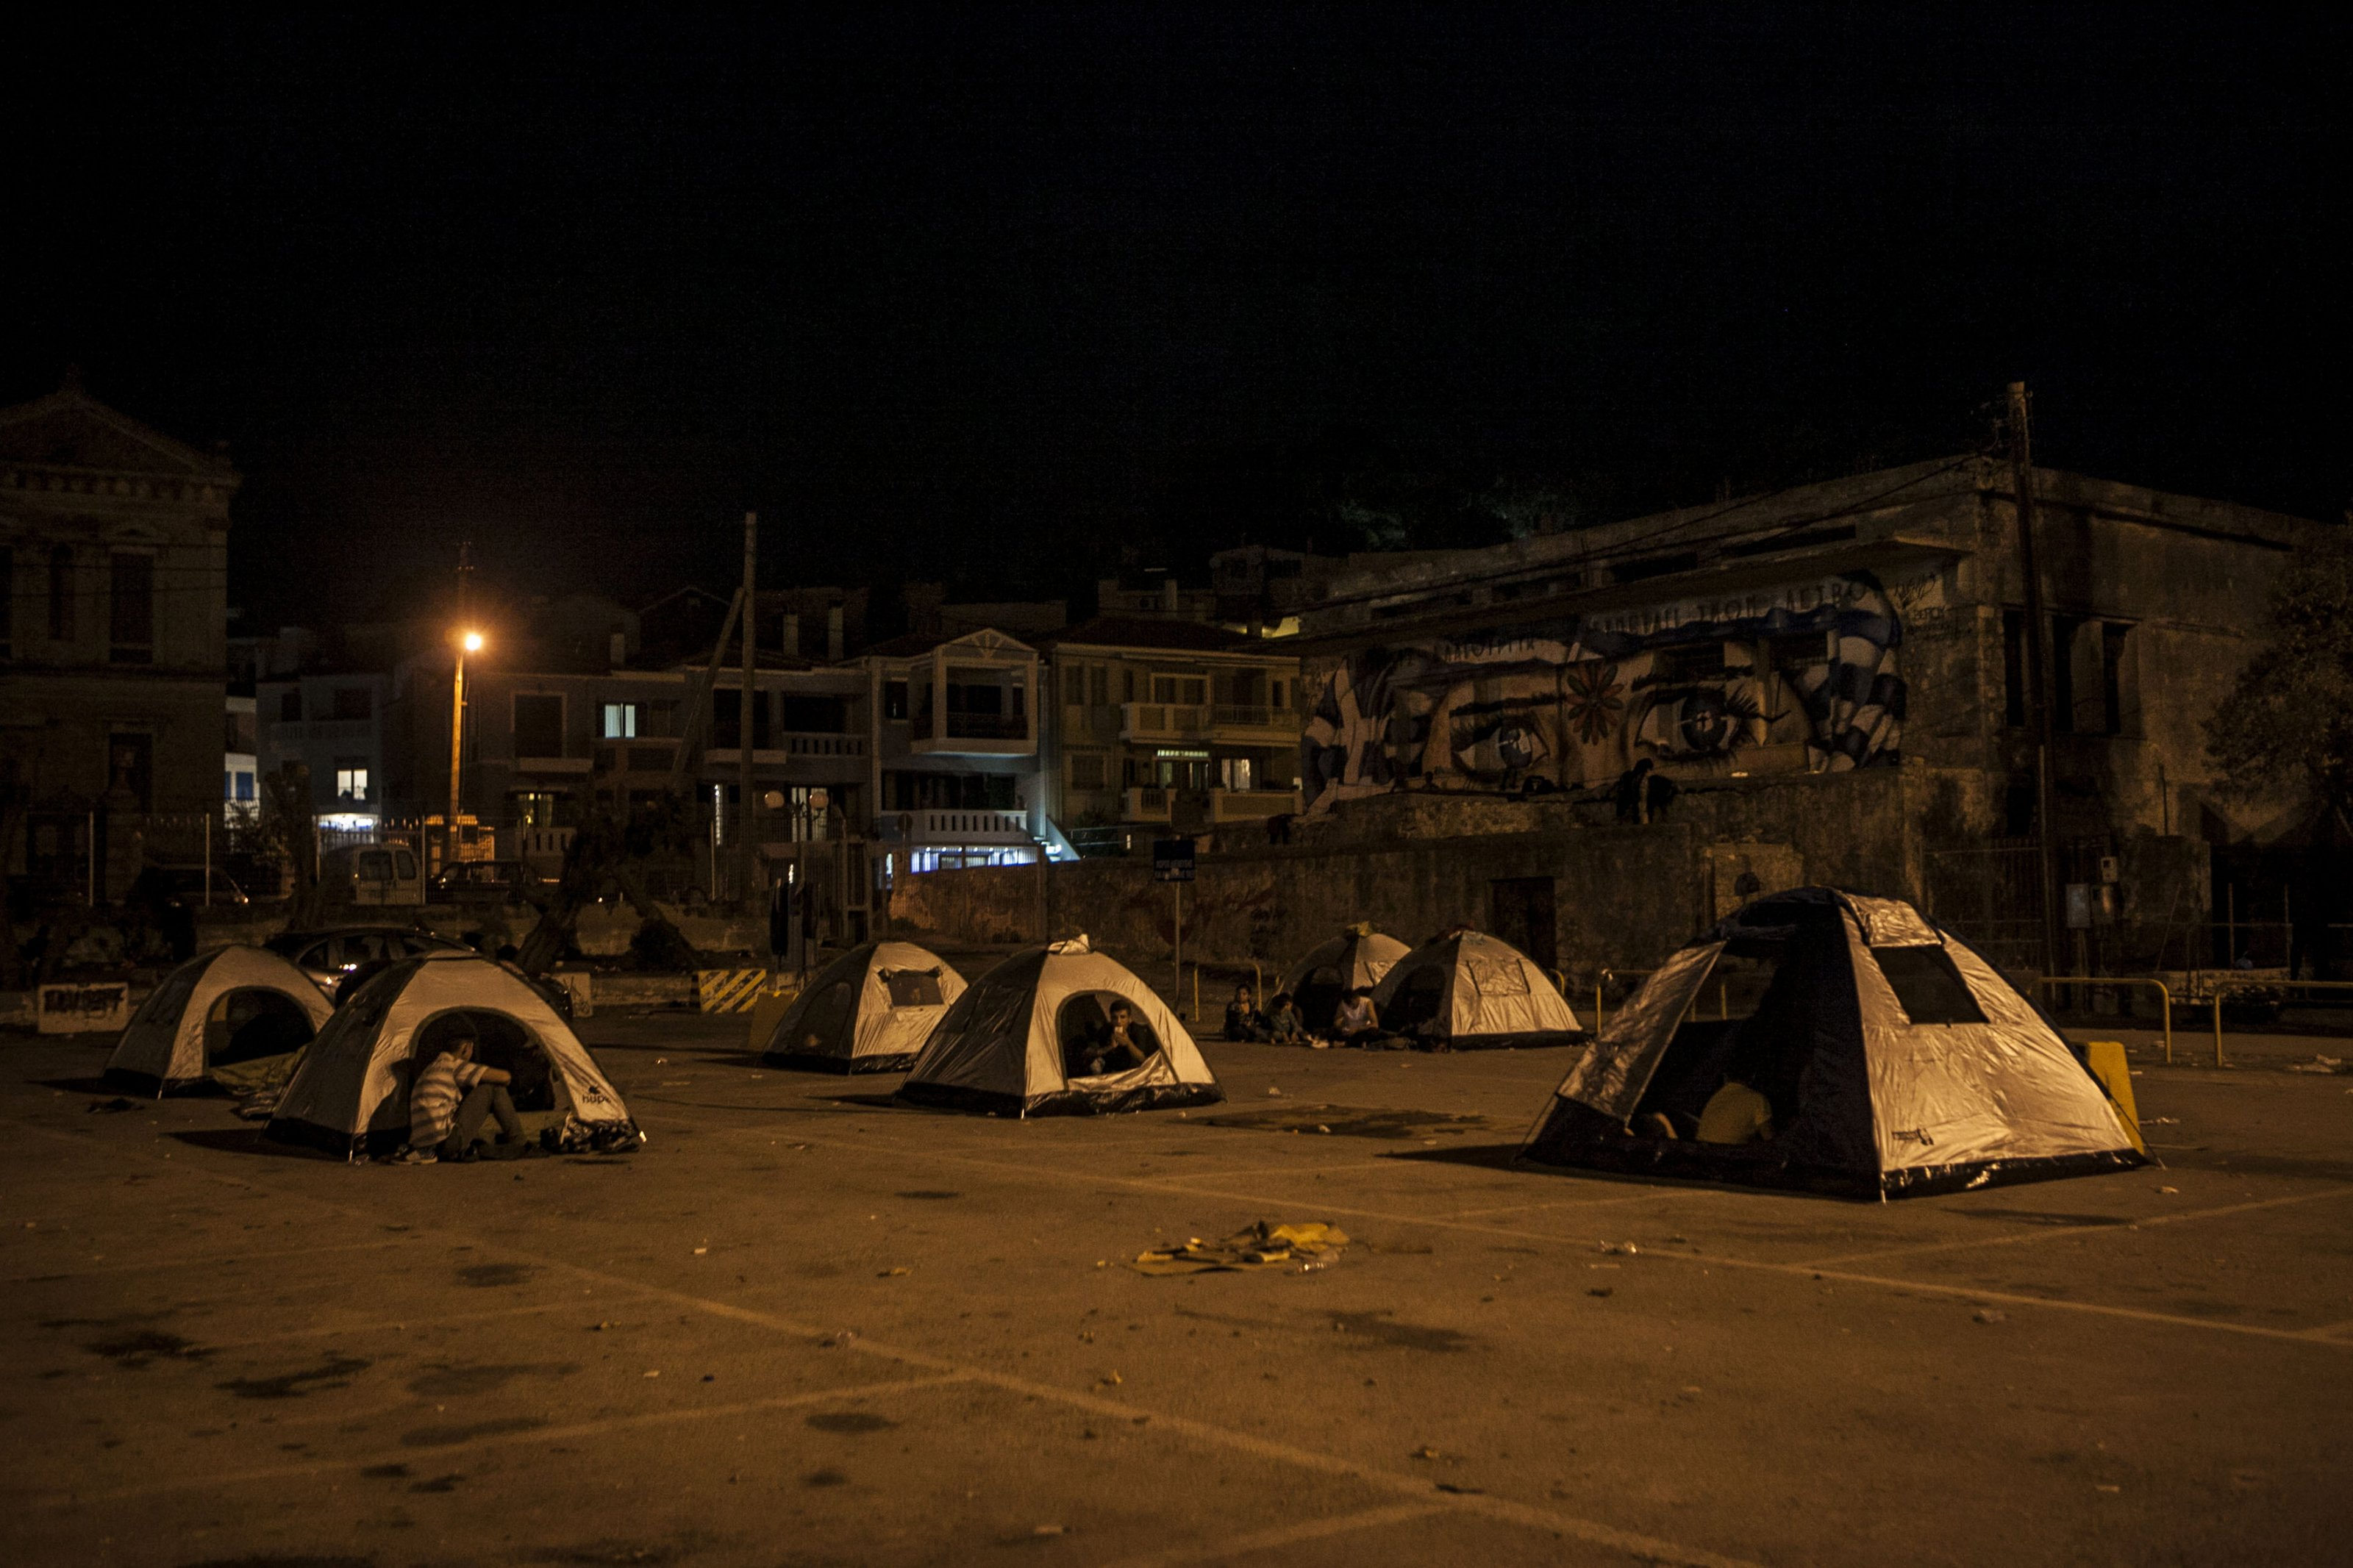 Syrian and Afghan refugees who successfully entered Europe by the sea, continue their journey. A majority of them is trying to find refuge in Germany. While waiting for their documents and ships that will carry them forth to Athens, the refugees built camps at the port and in other corners of the island. Lesbos, Greece, September 28, 2015. Photo by Cigdem Ucuncu/NarPhotos/ABACAPRESS.COM